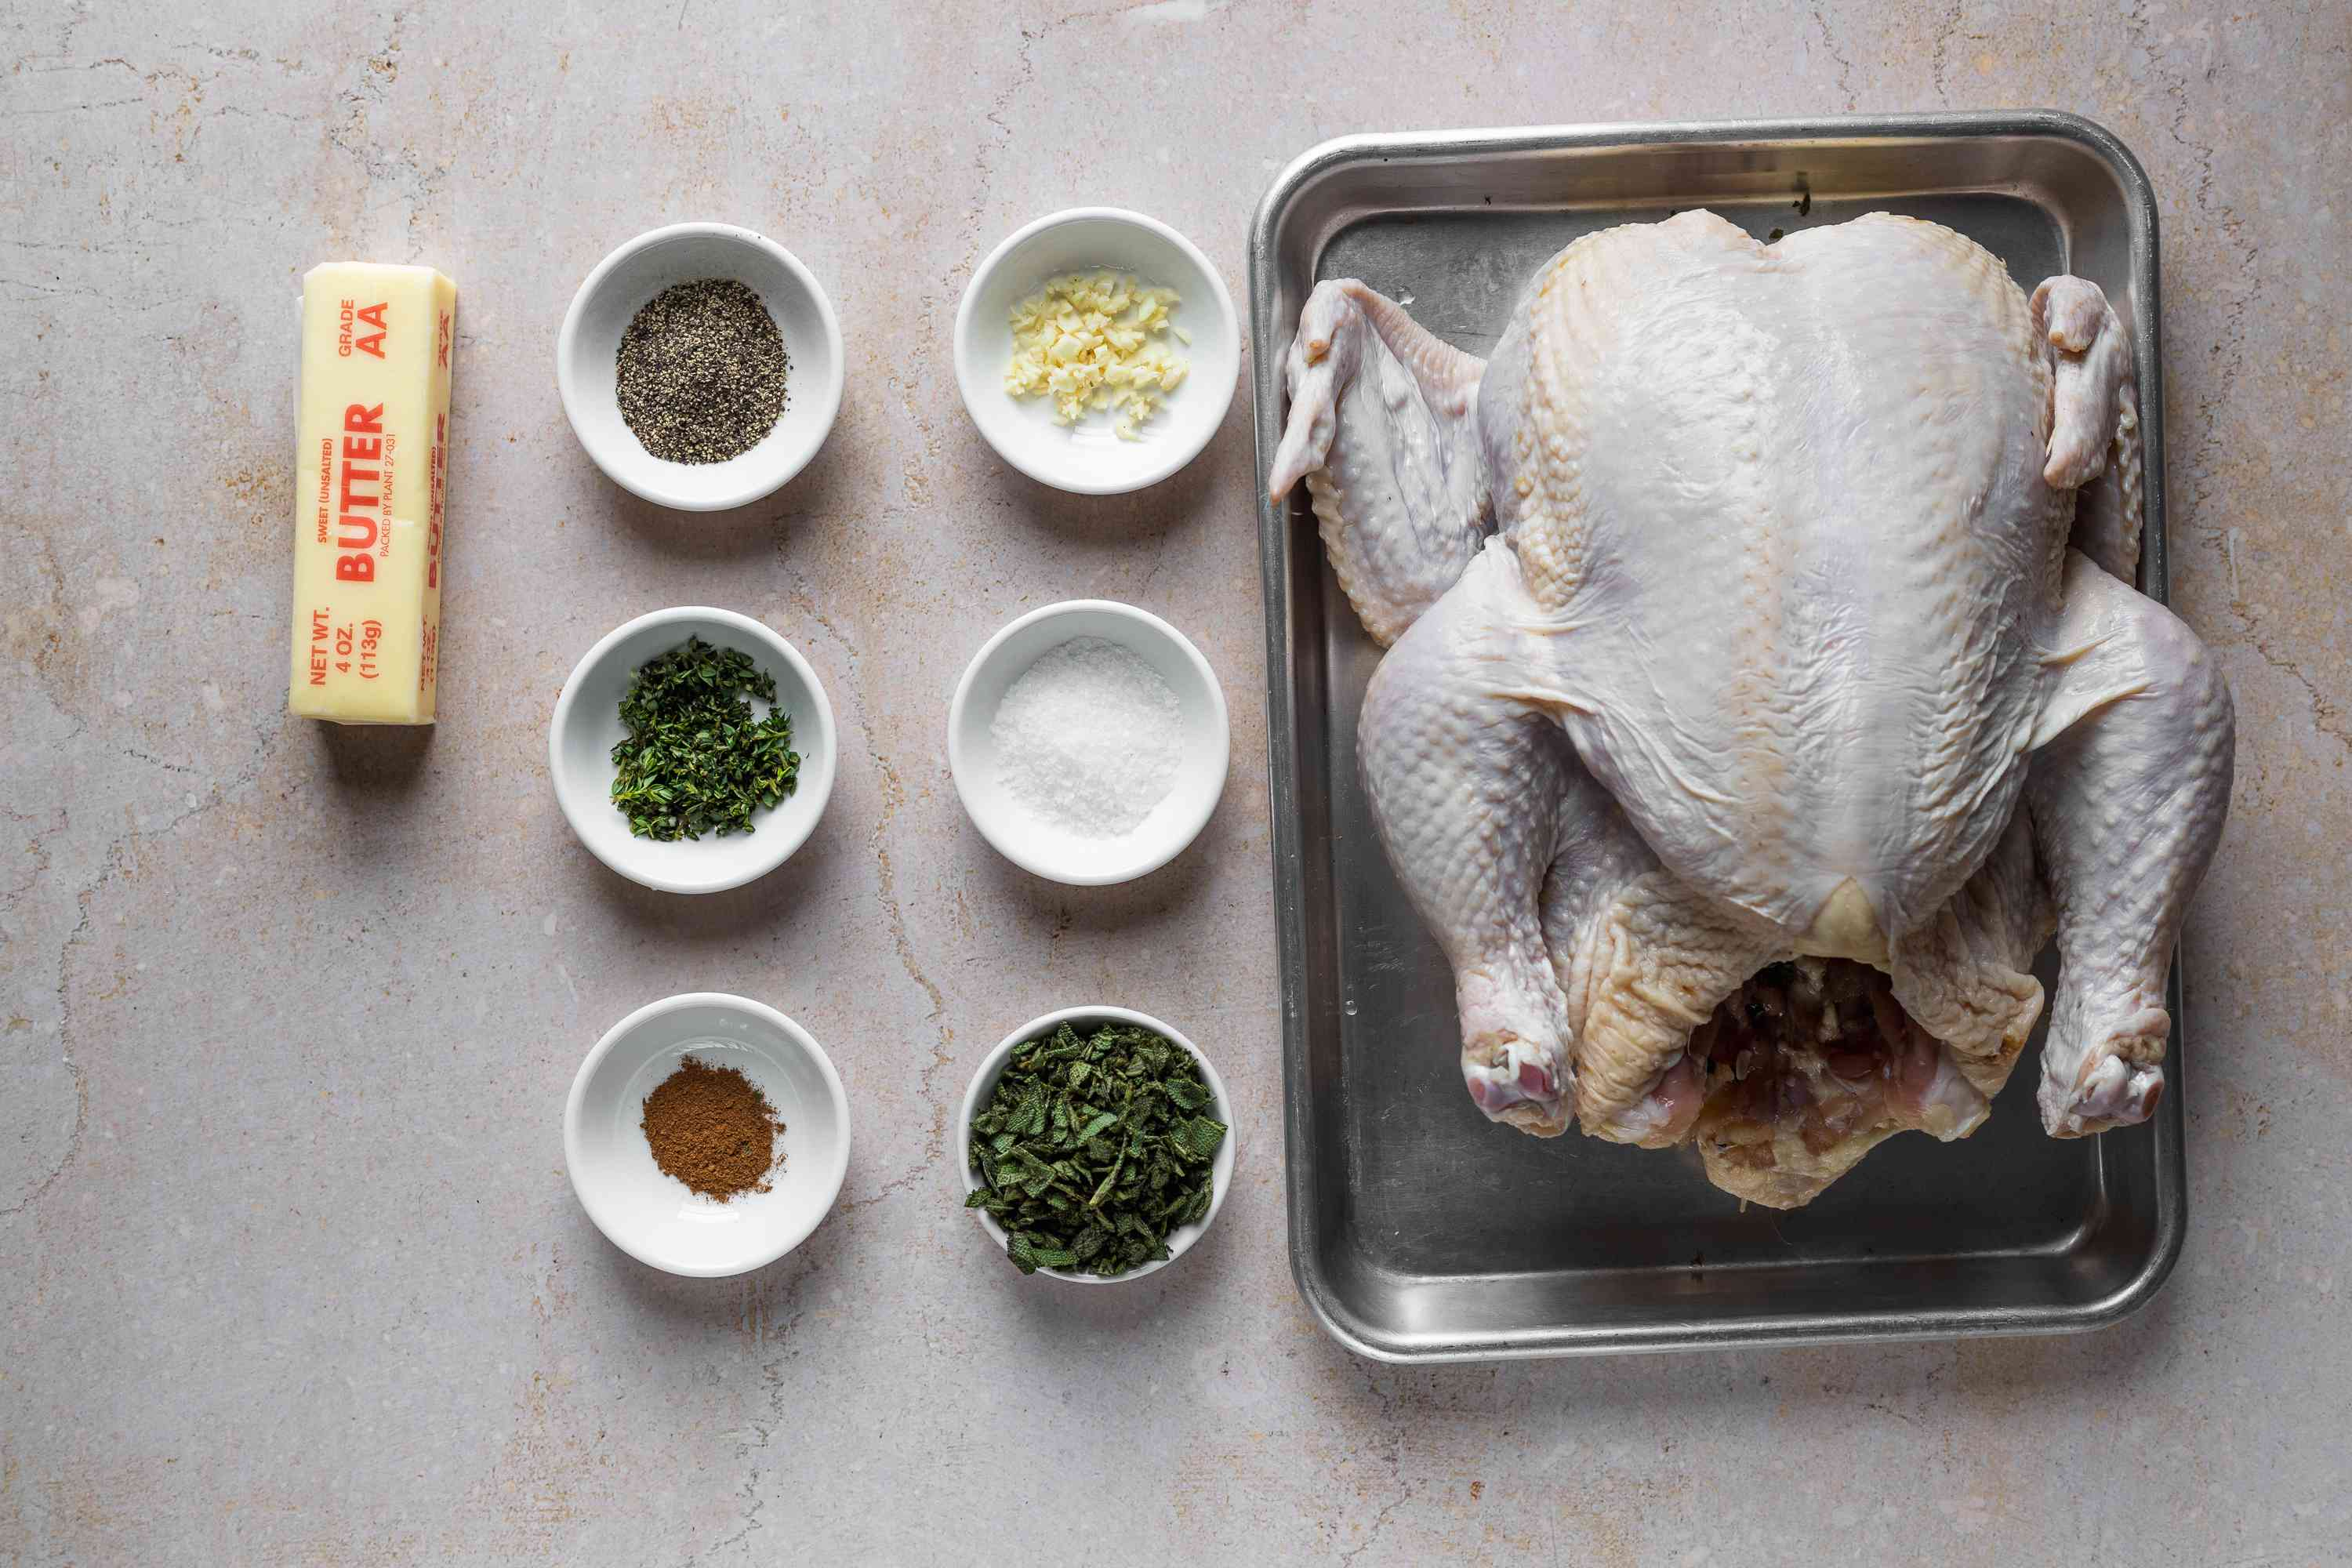 Ingredients for turkey compound butter recipe